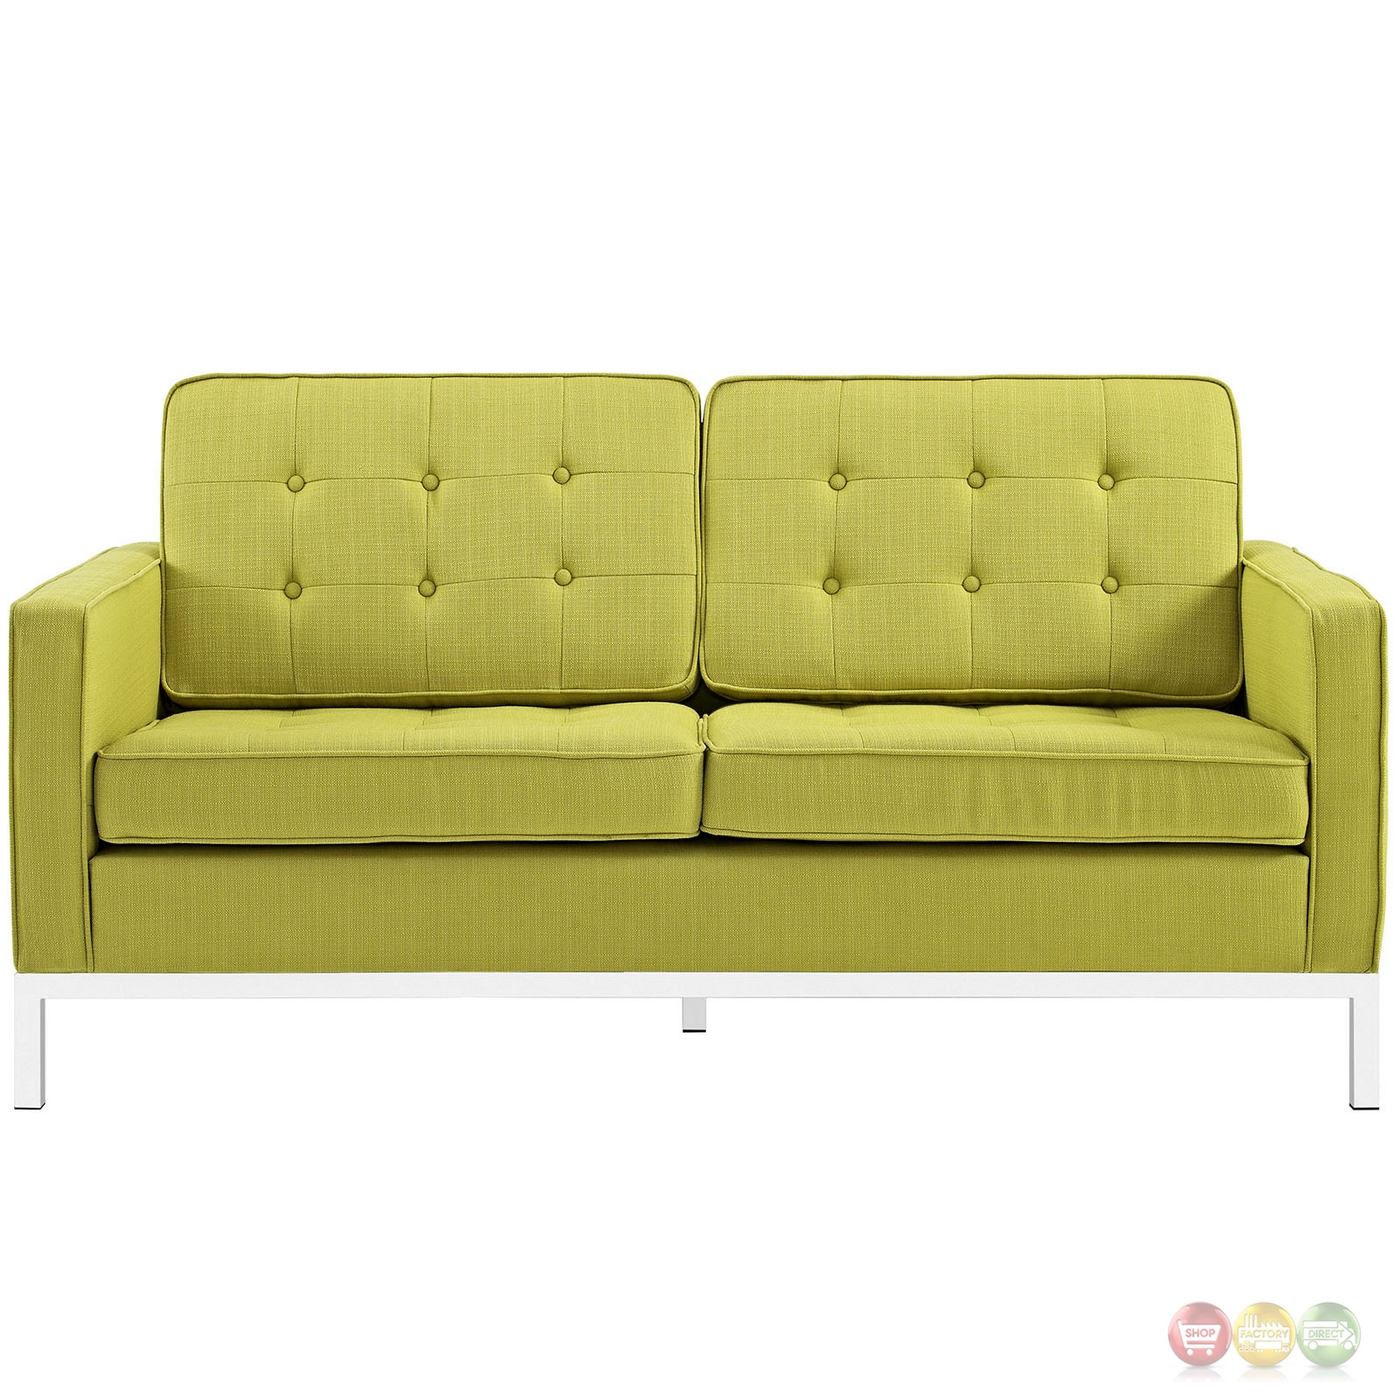 Loft Contemporary Button Tufted Upholstered Loveseat W Chrome Base Wheatgrass